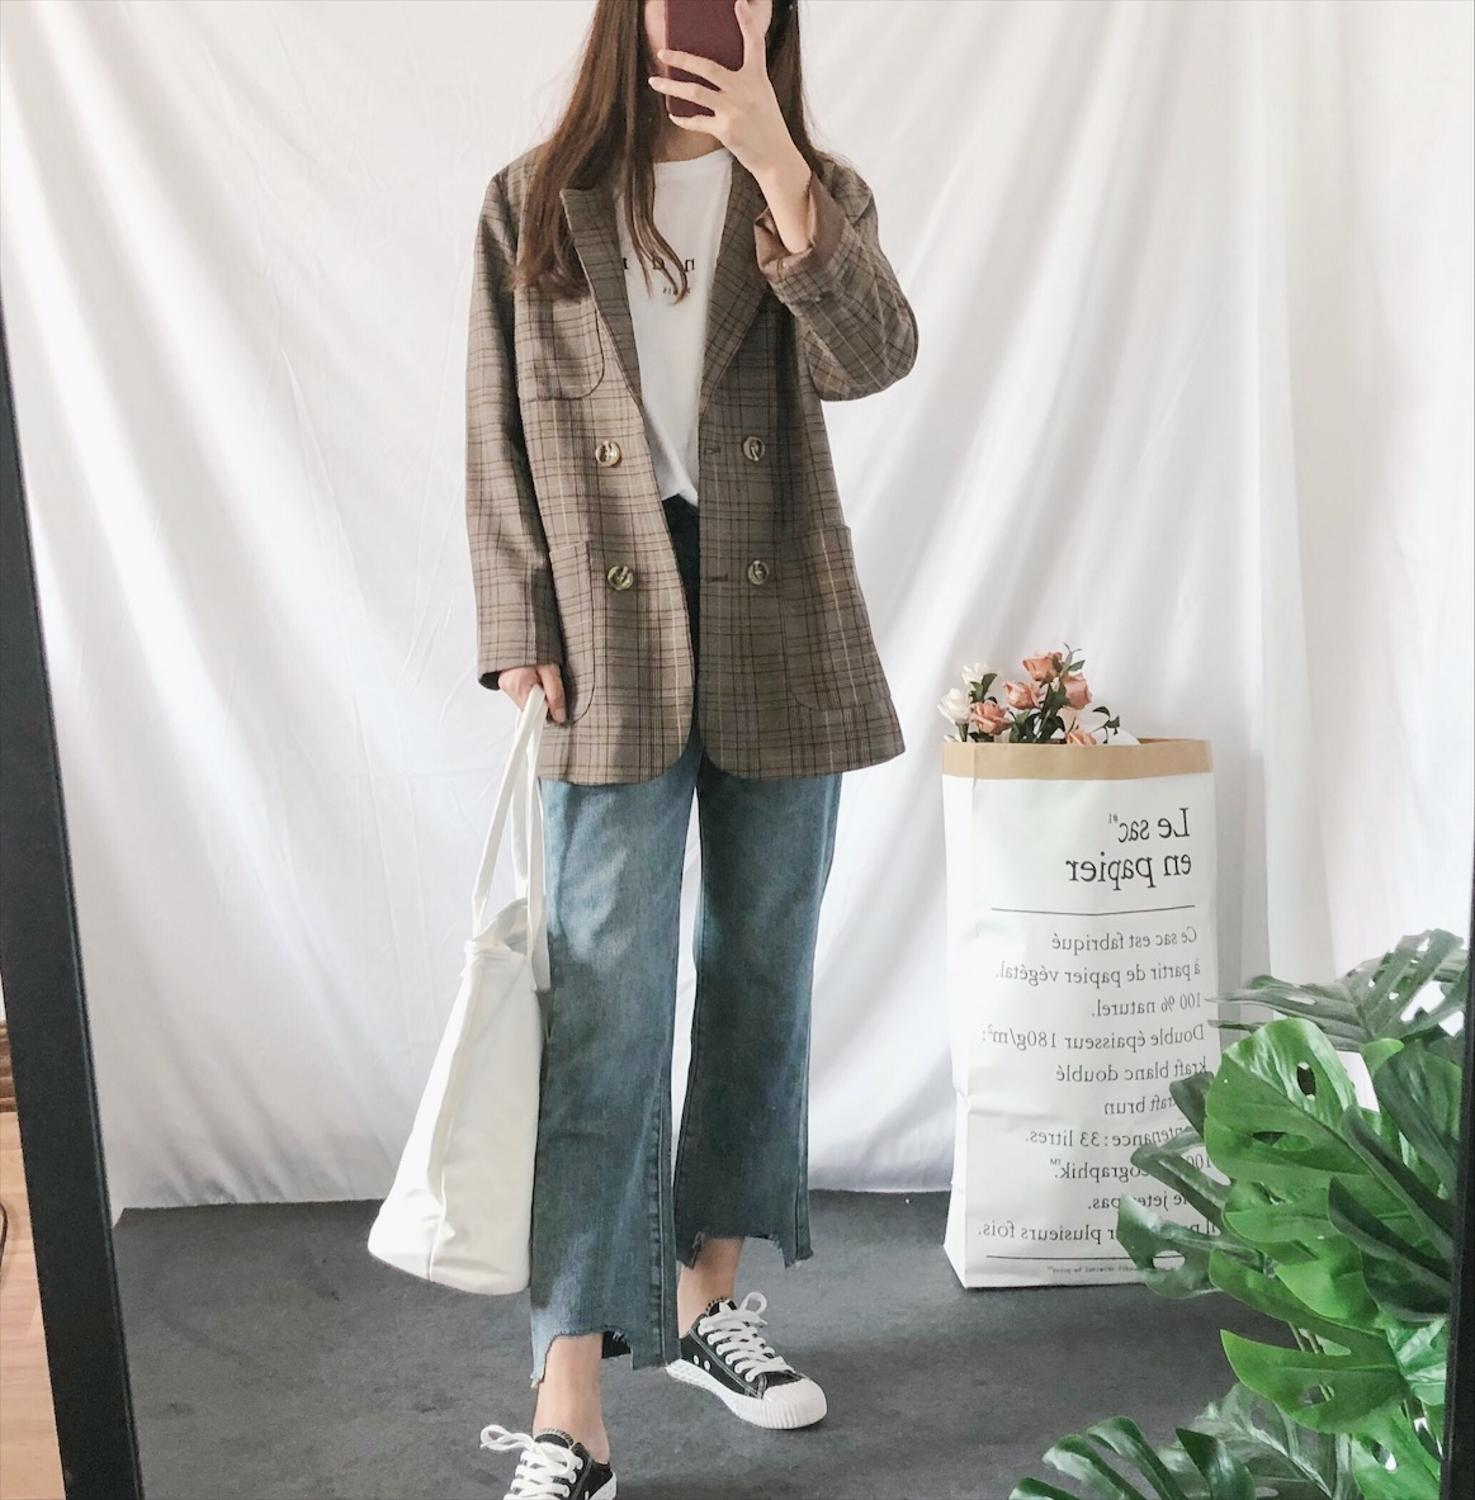 New Fashion Women Plaid Blazer Coats Gray Vintage Double Breasted Formal Suit Jacket Office Lady Norched